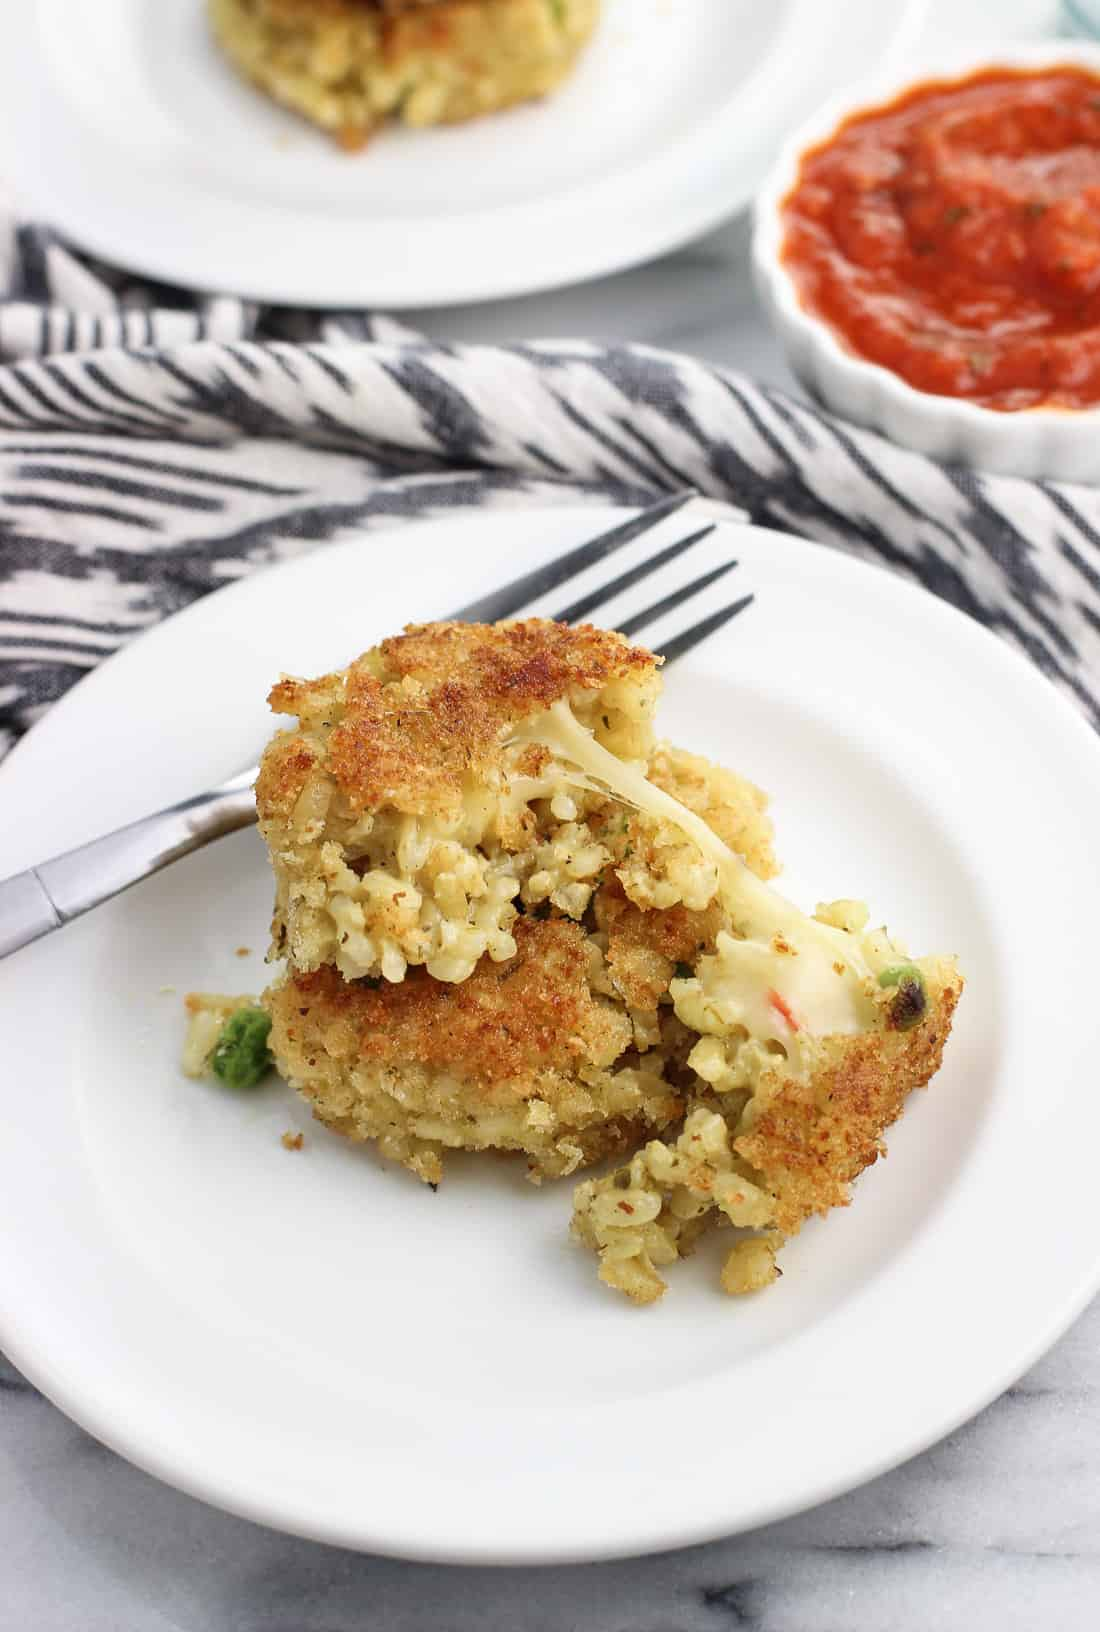 Two risotto cakes in a stack with the top cake cut in half to see the cheese pulling out